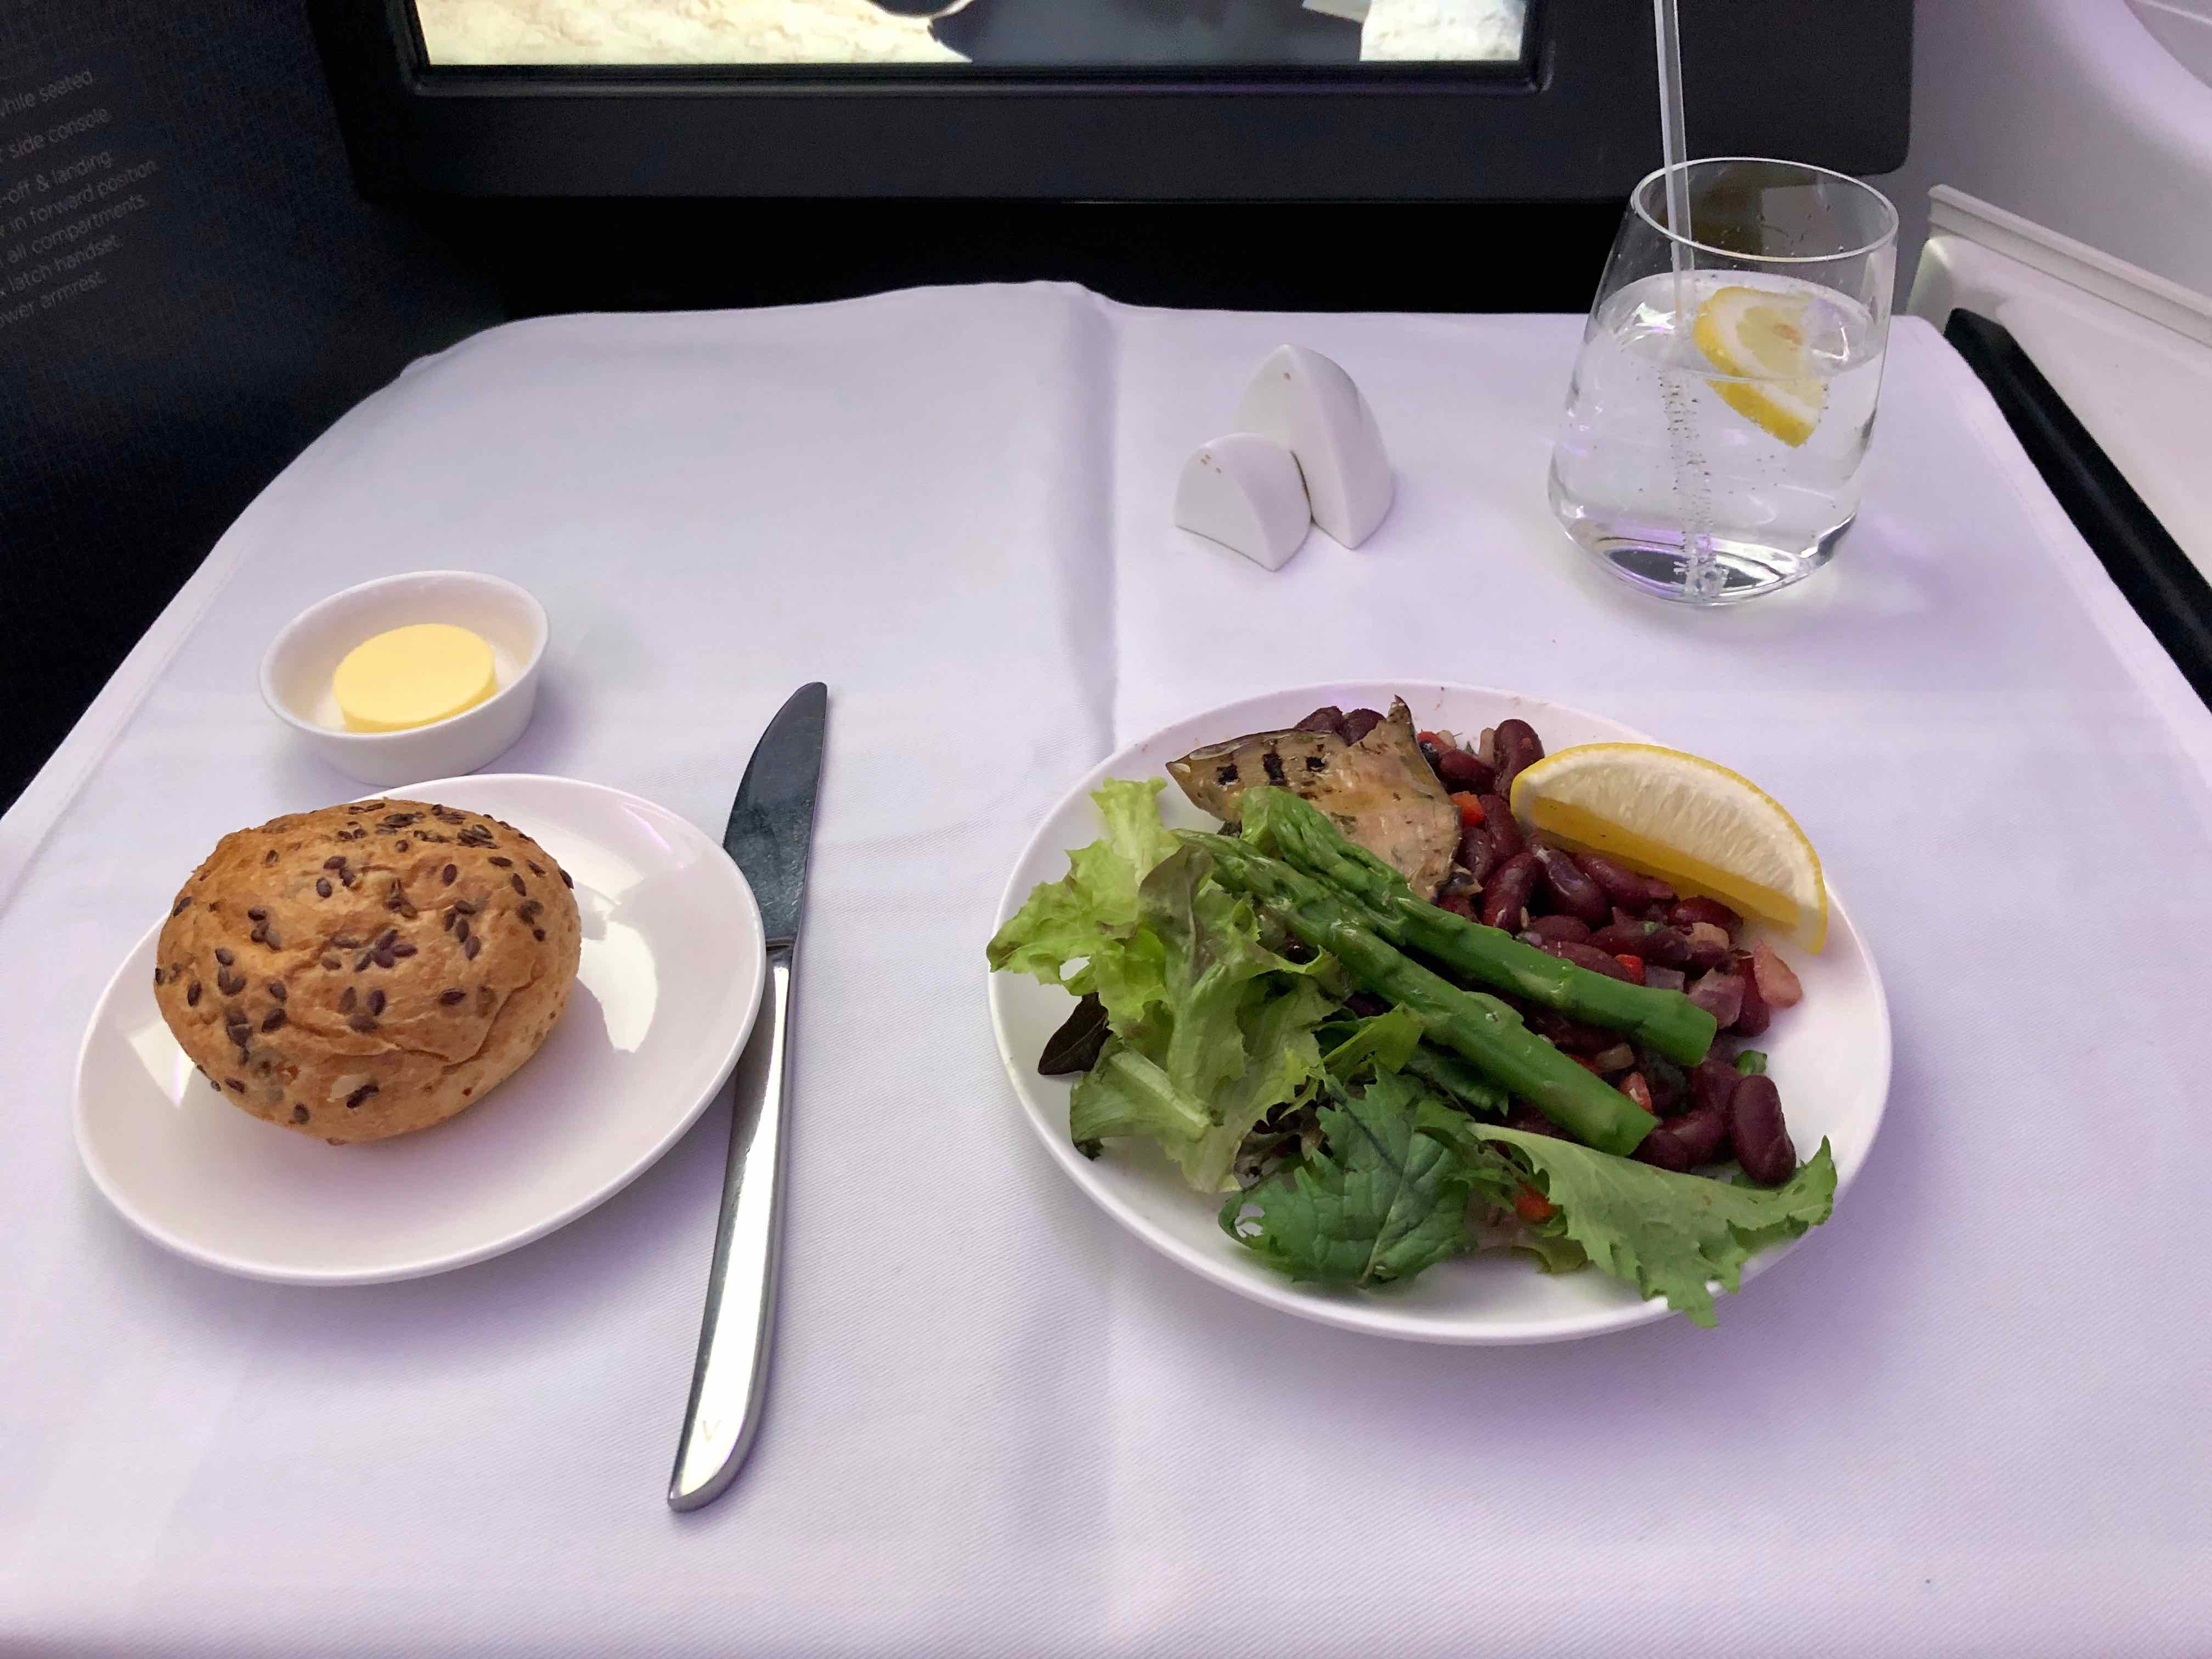 Virgin Australia A330 Business Class salad and dinner roll